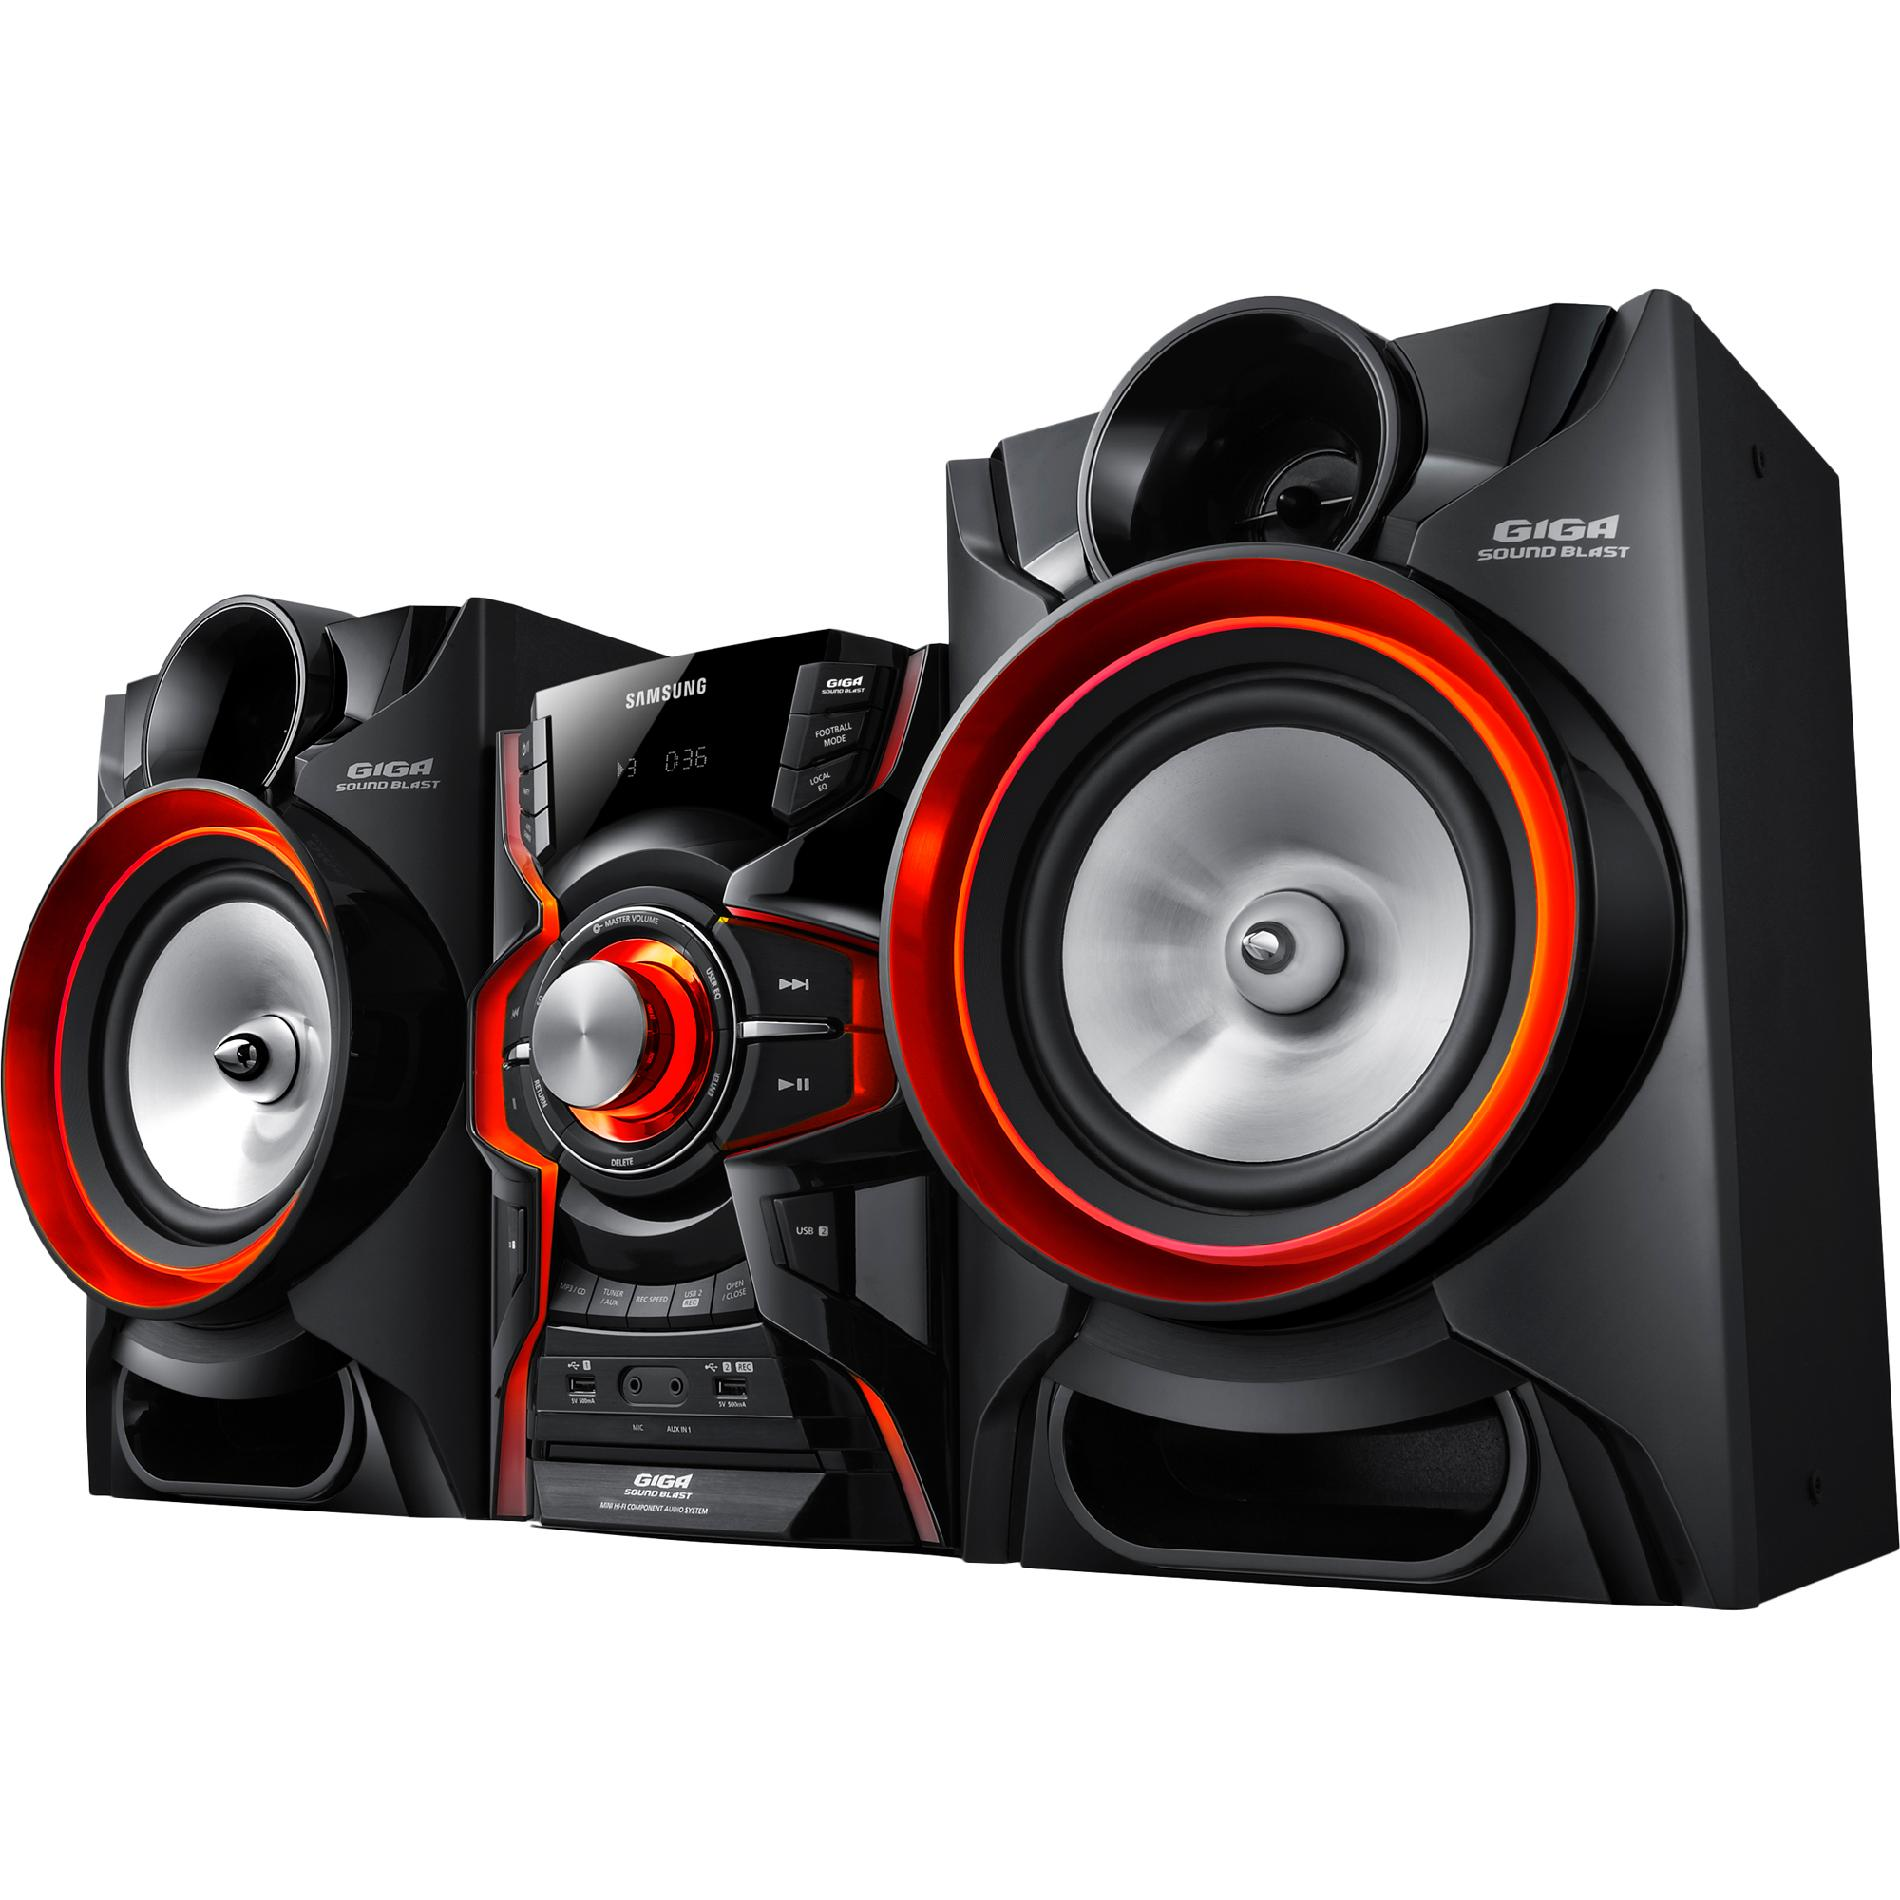 Samsung Mini Audio System MX-F830B